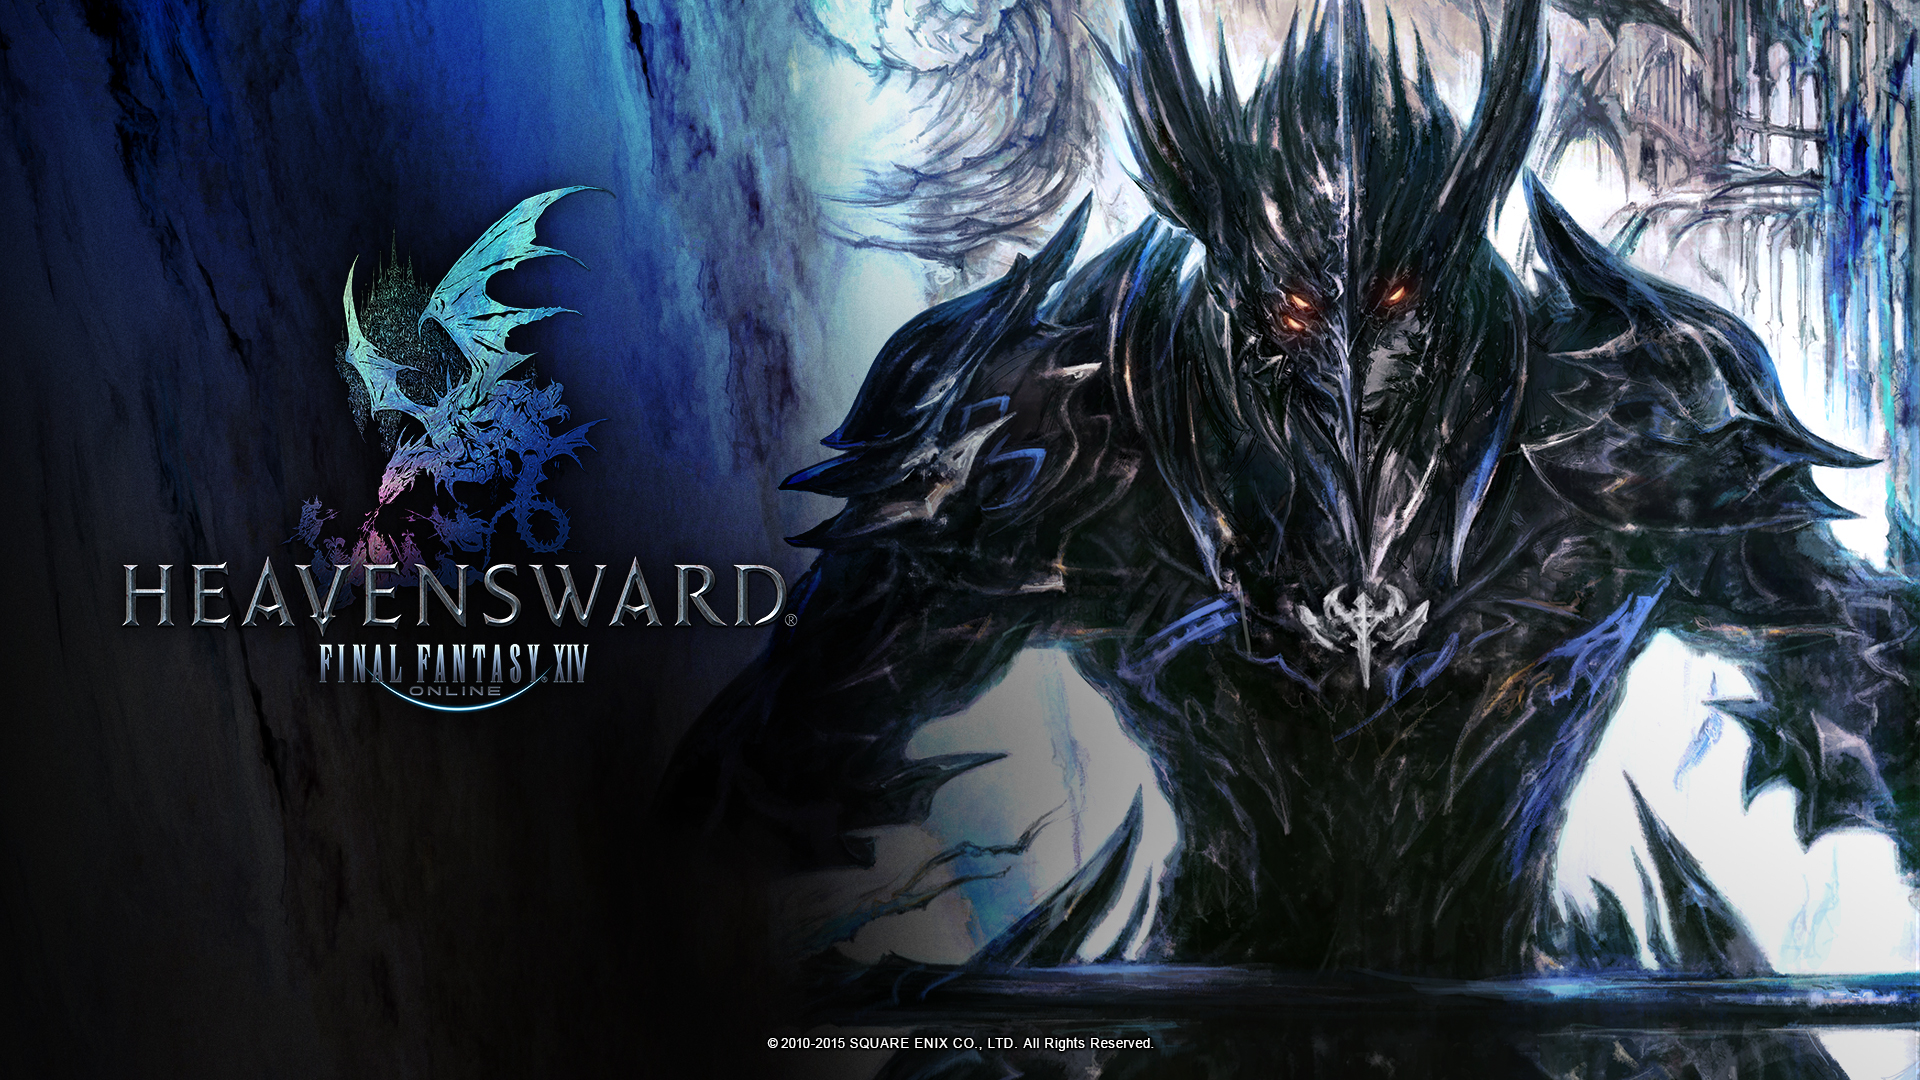 49+] FFXIV Heavensward Wallpaper on WallpaperSafari